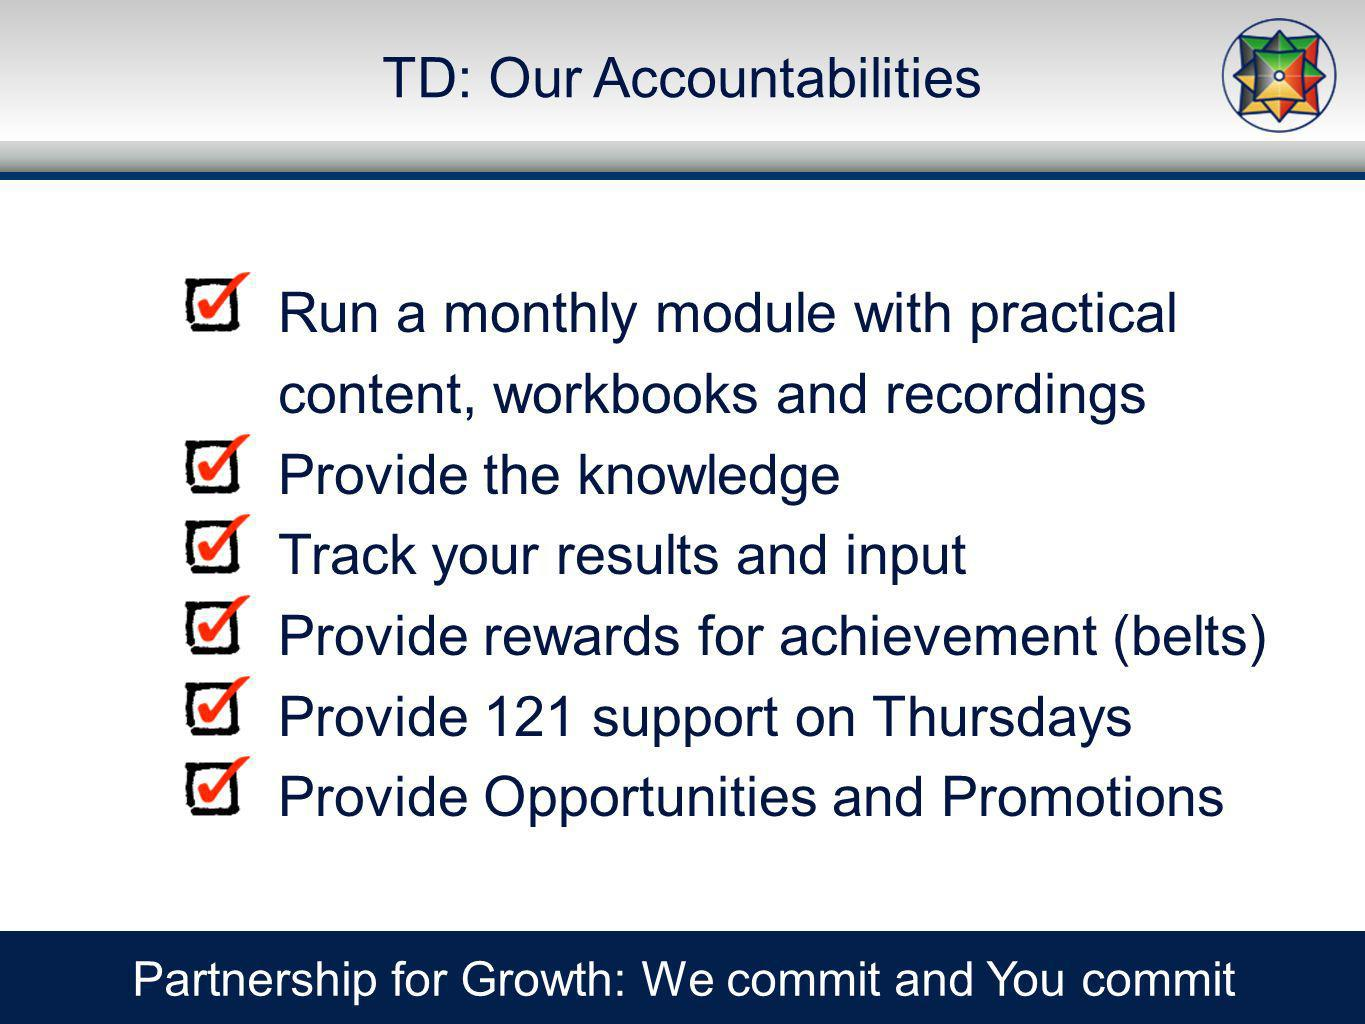 Participants: Your Accountabilities Partnership for Growth: We commit and You commit Complete all 14 modules Apply / take the required actions Commit to at least 4-6 hours per month Report your monthly results (scoreboard) Submit two client case studies Submit own success case study Purchase (and sell on) minimum of 10 Talent Dynamics profiles each month